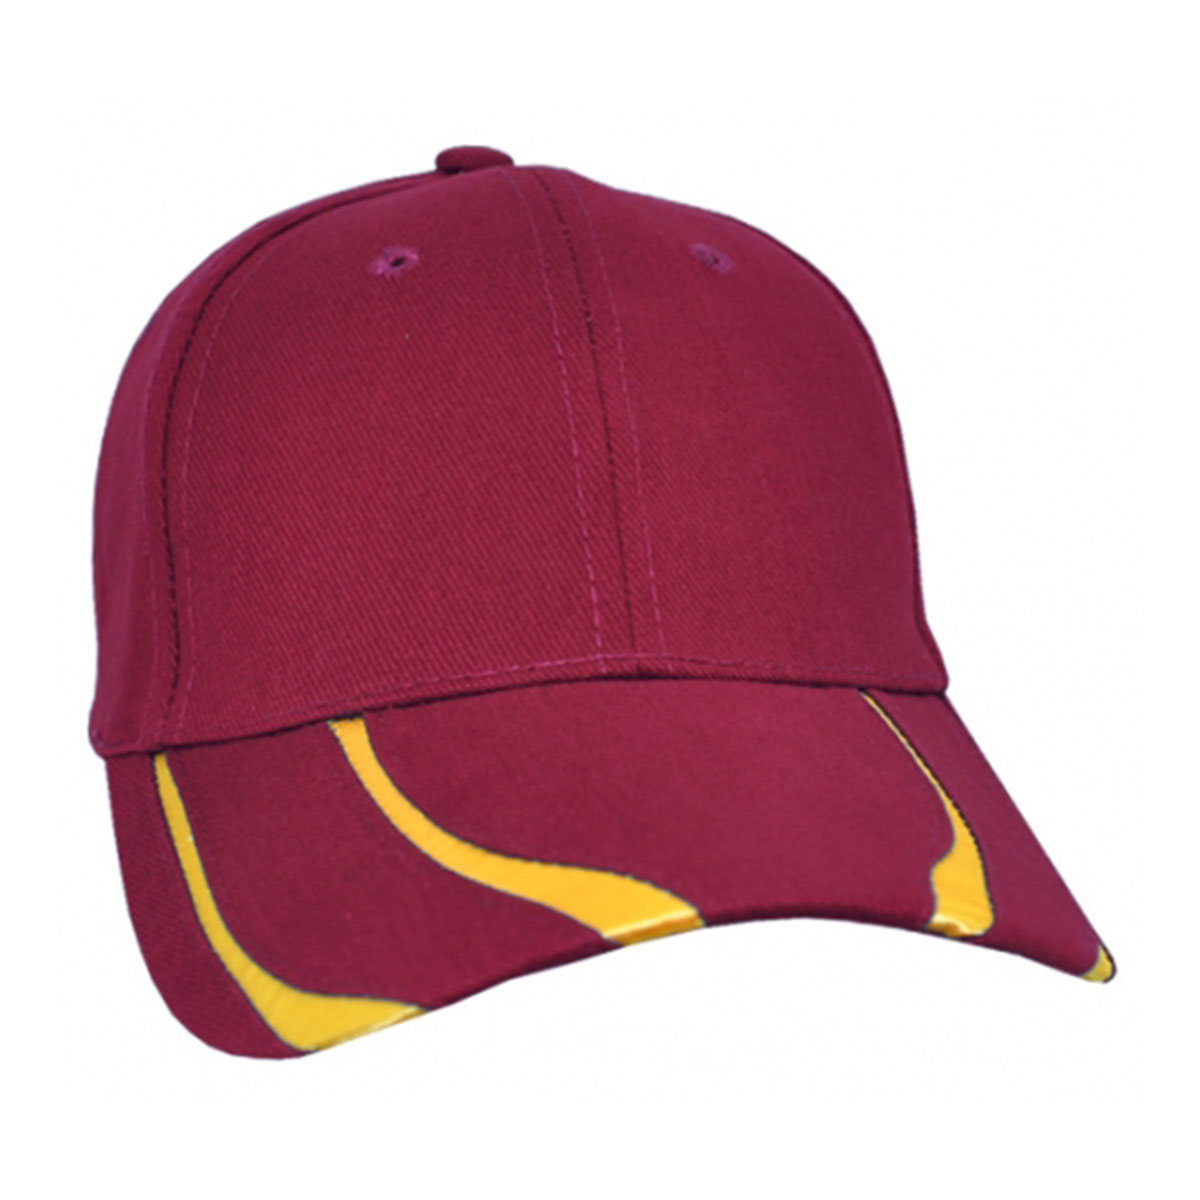 Striker Cap-Maroon / Gold